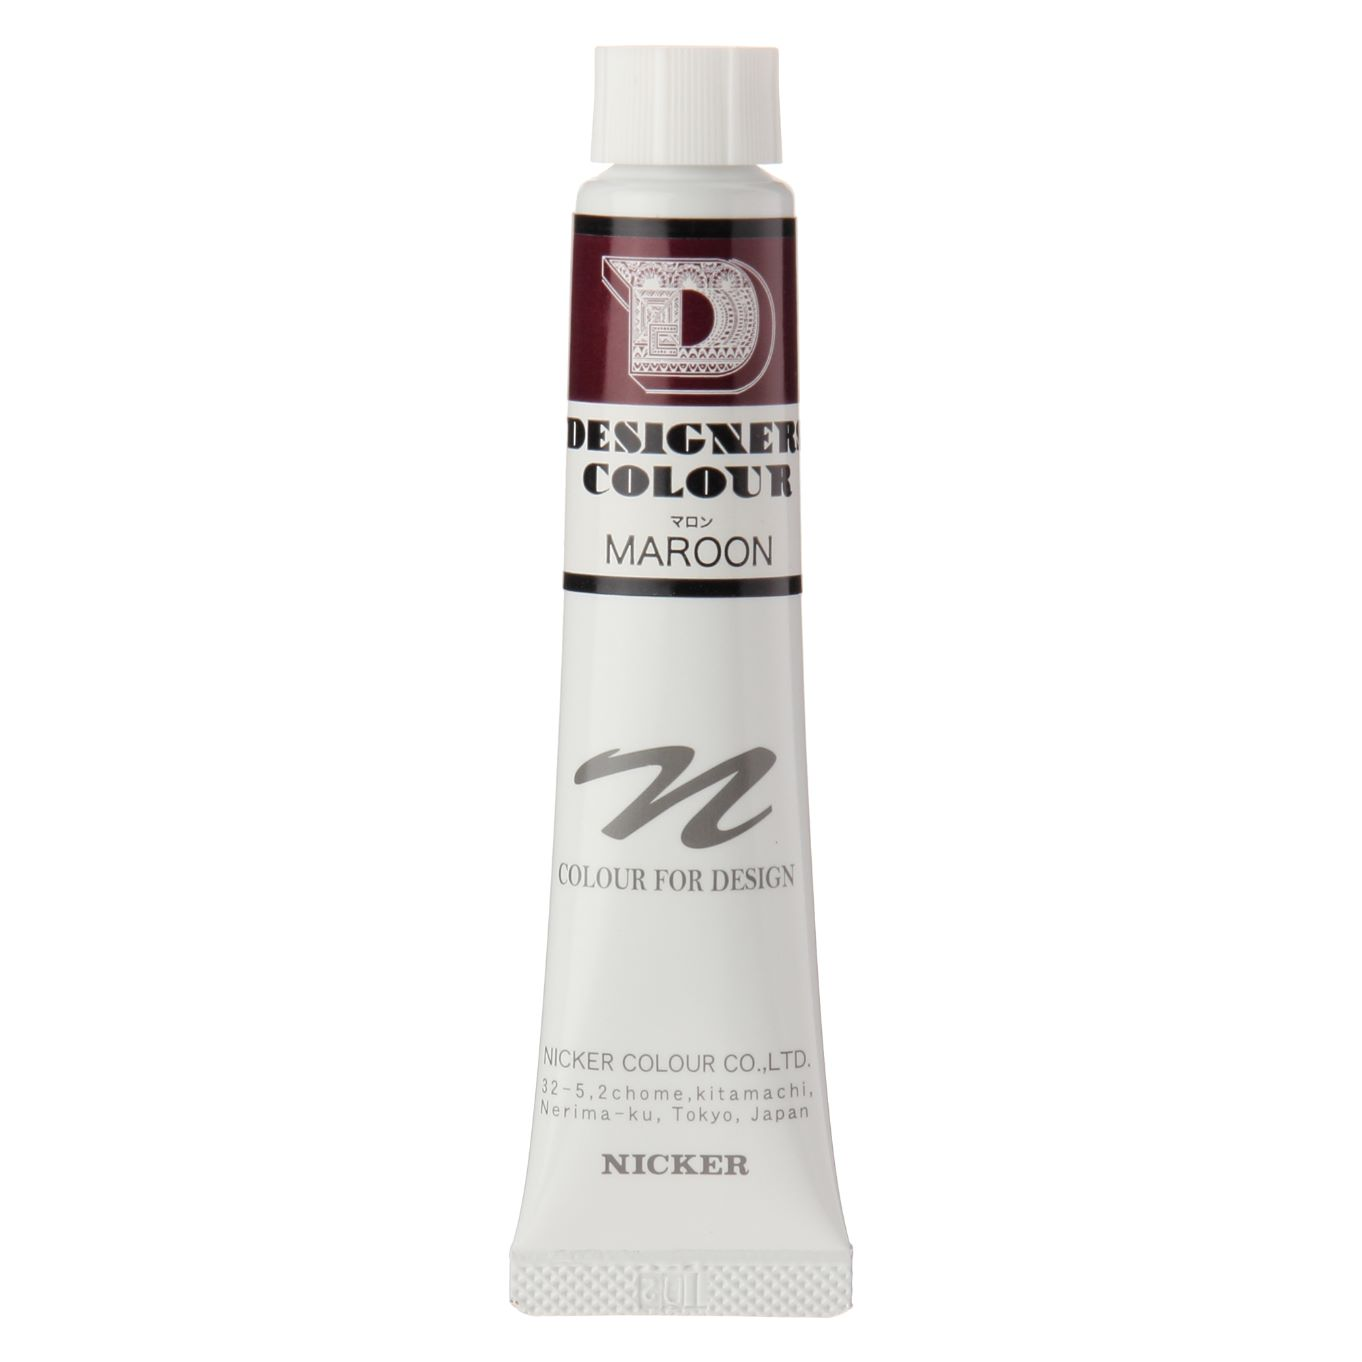 DESIGNERS COLOUR 20ml 519 MAROON